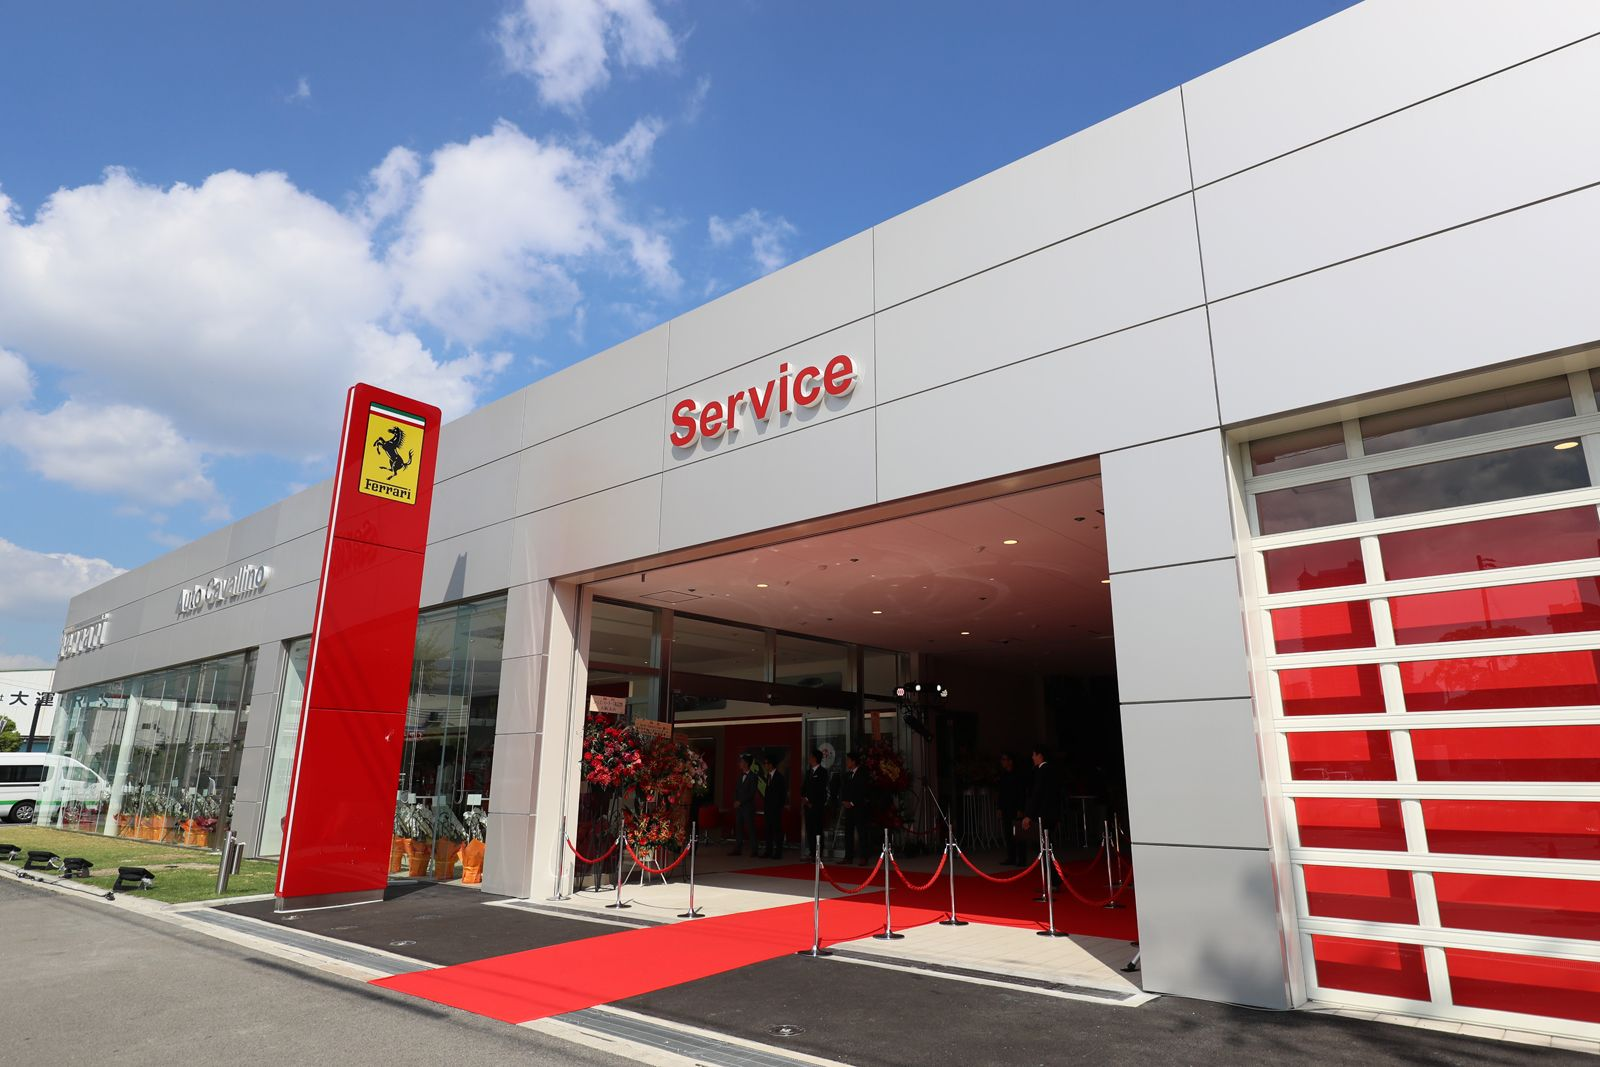 Ferrari Doubles Down On Japanese Market With Two New